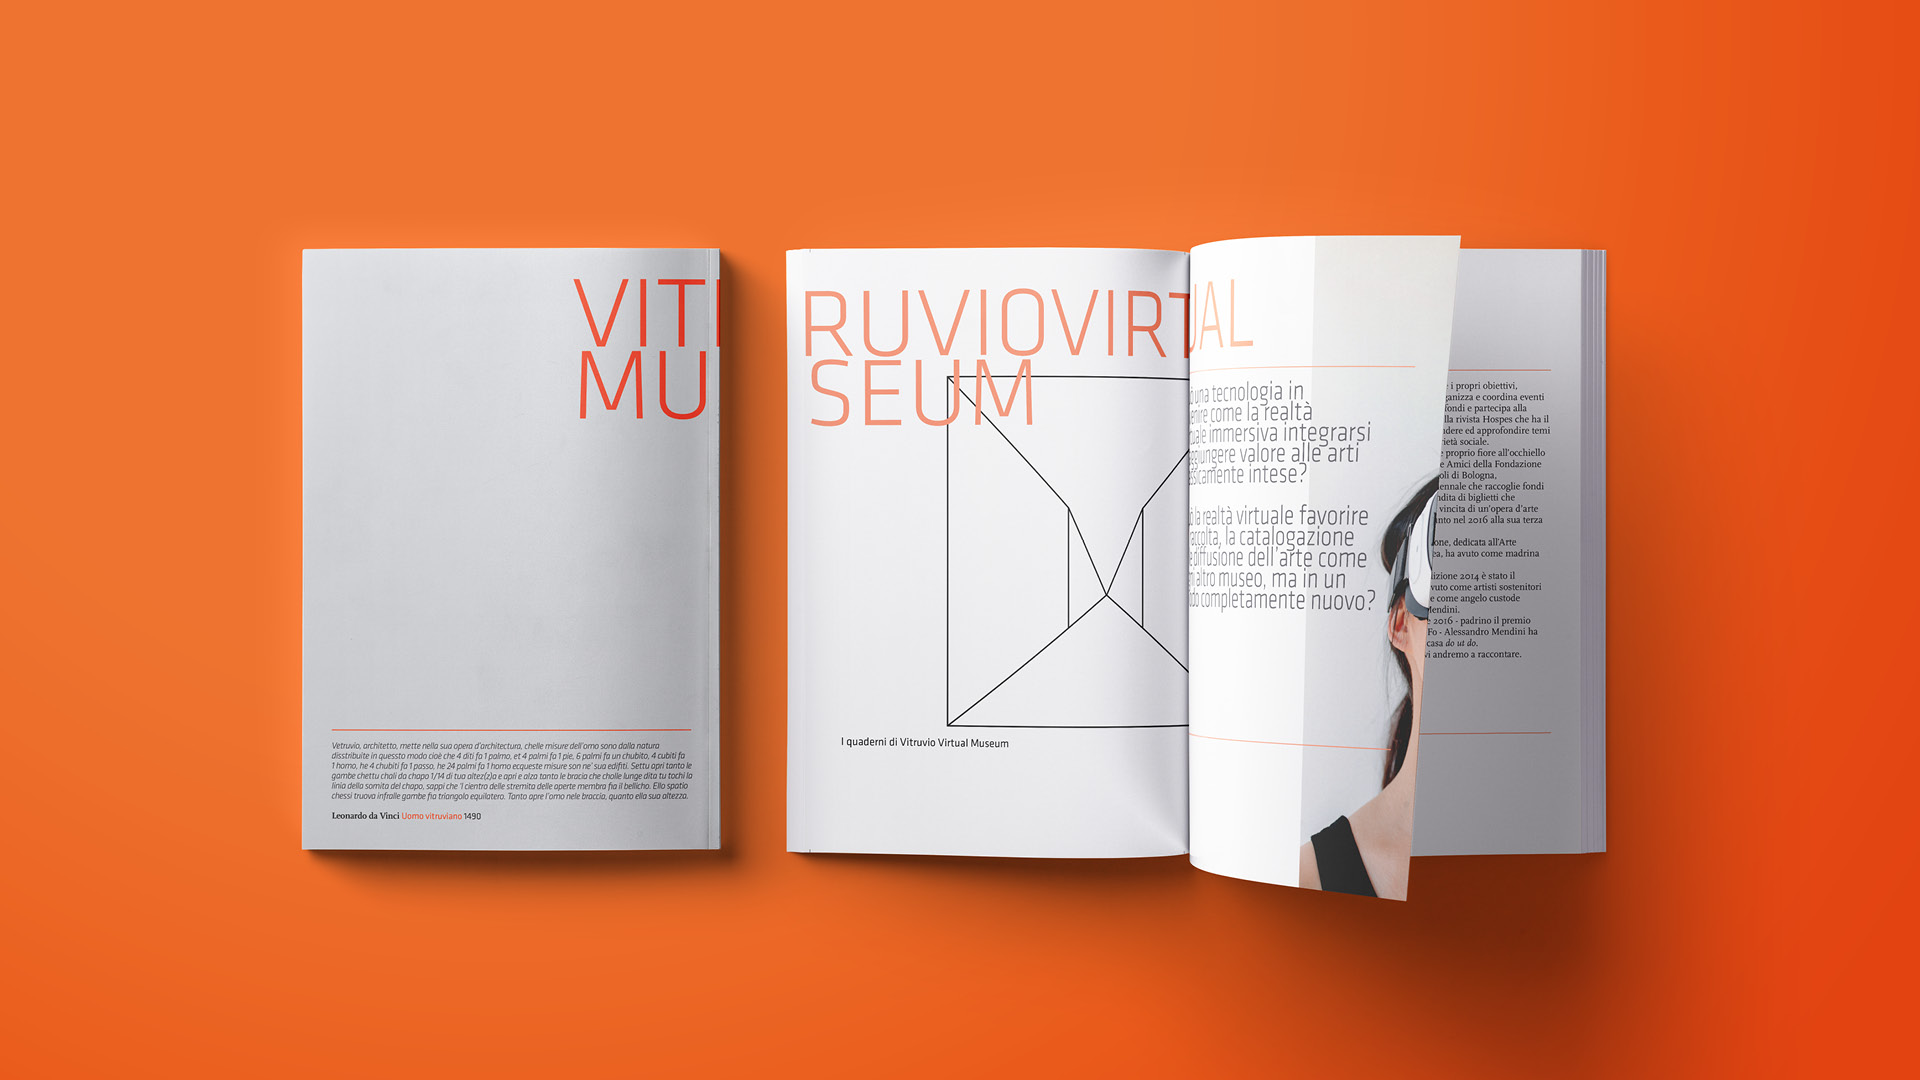 Catalogo Vitruvio Virtual Museum